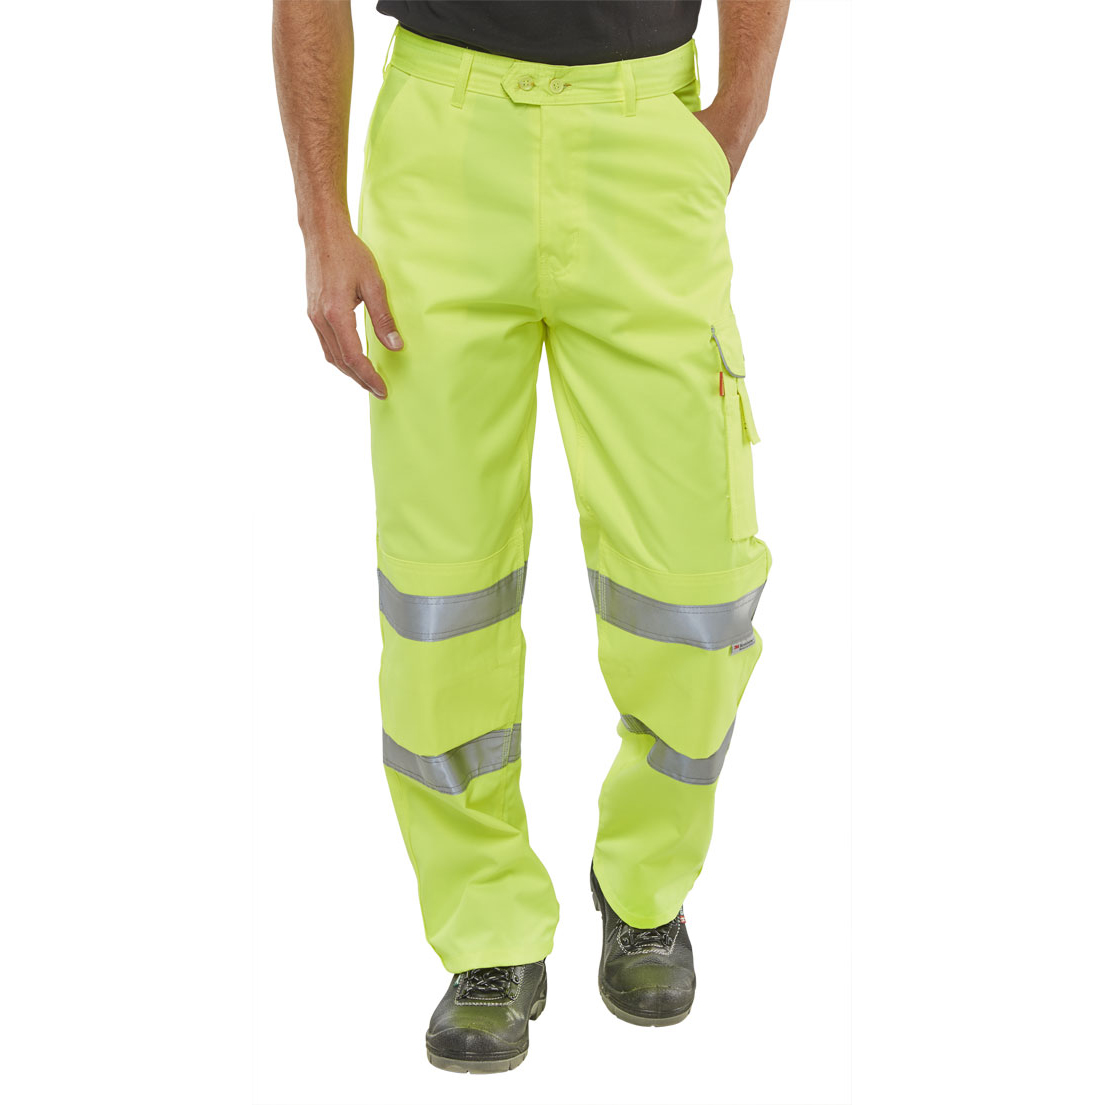 BSeen Trousers Polycotton Hi-Vis EN471 Saturn Yellow 44 Long Ref PCTENSY44T *Up to 3 Day Leadtime*